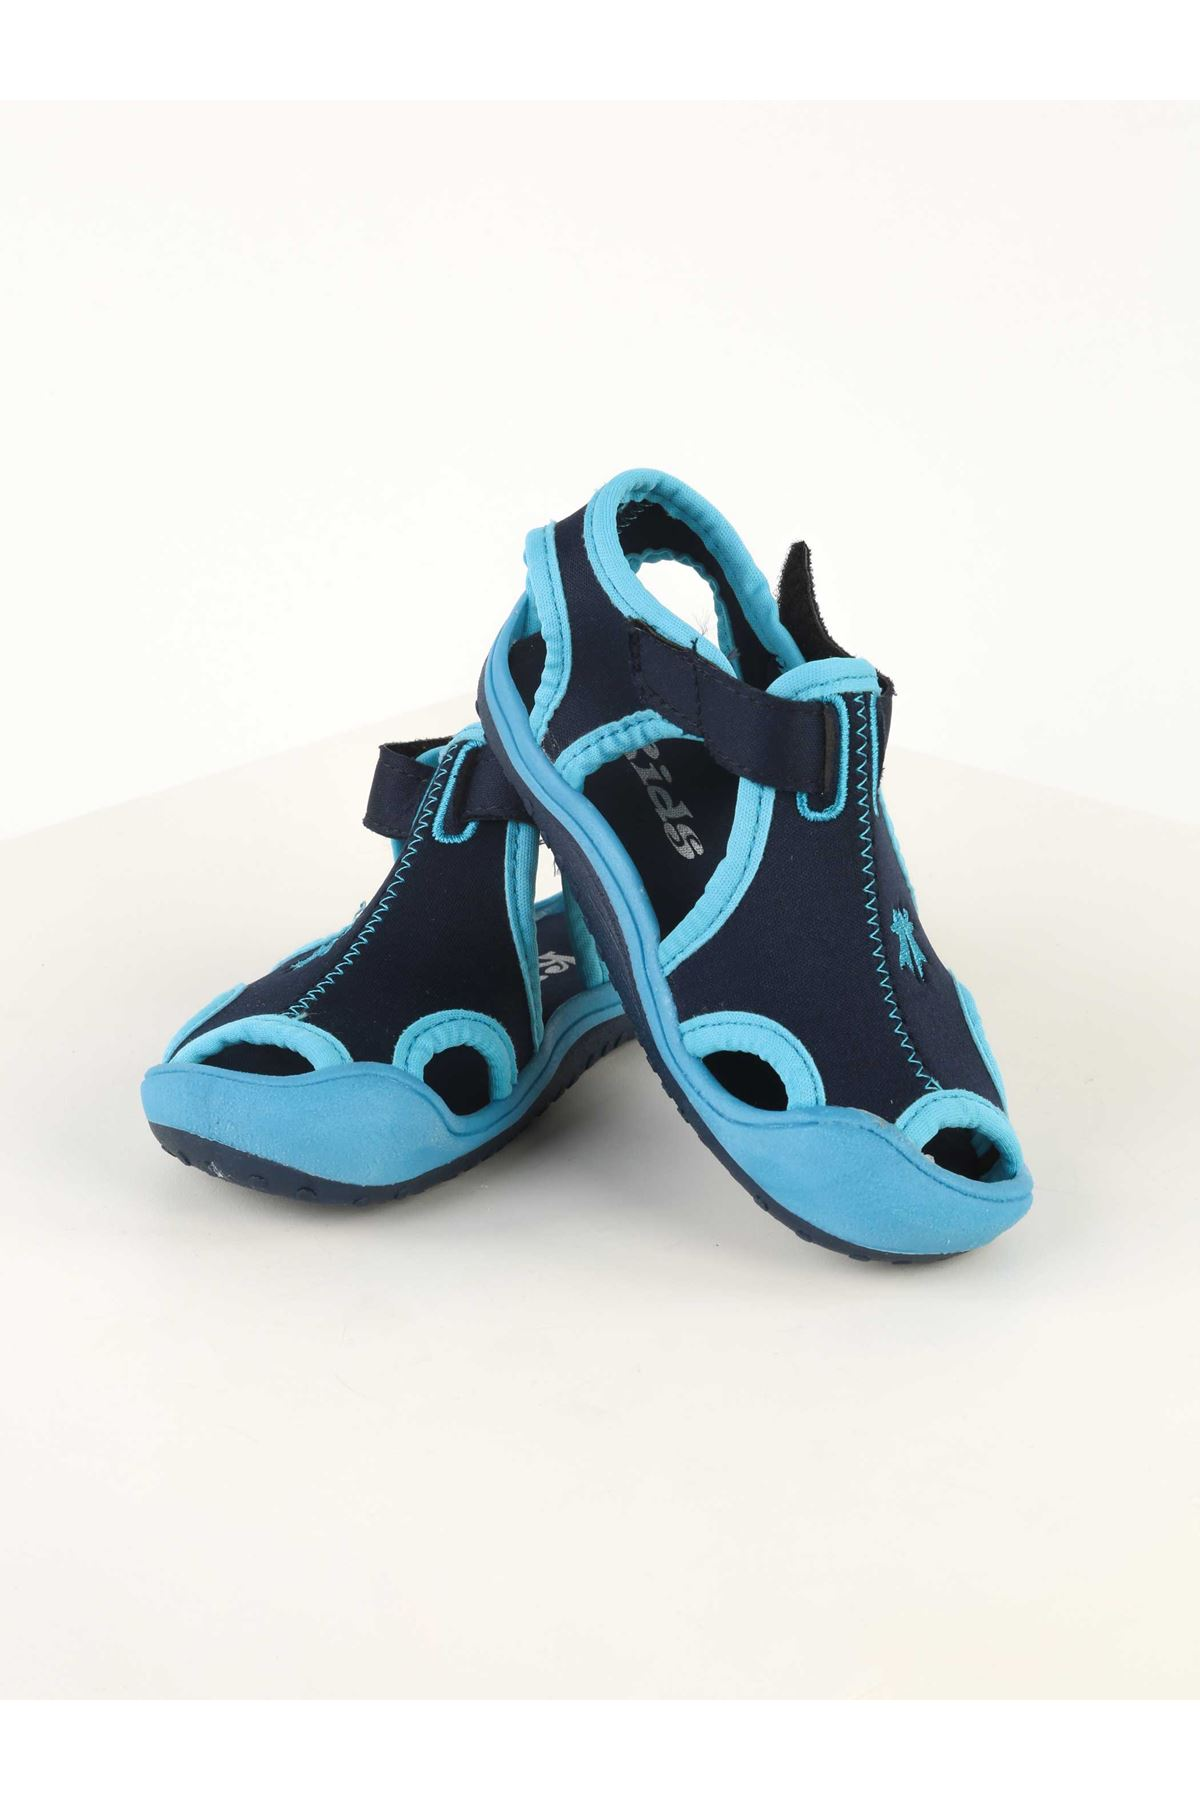 Blue Boy Sandals Slippers Wear in Summer Outdoor Shoes Male Teen Holiday Non-Sweaty Non-Slip Pool Sea Holiday usage Models